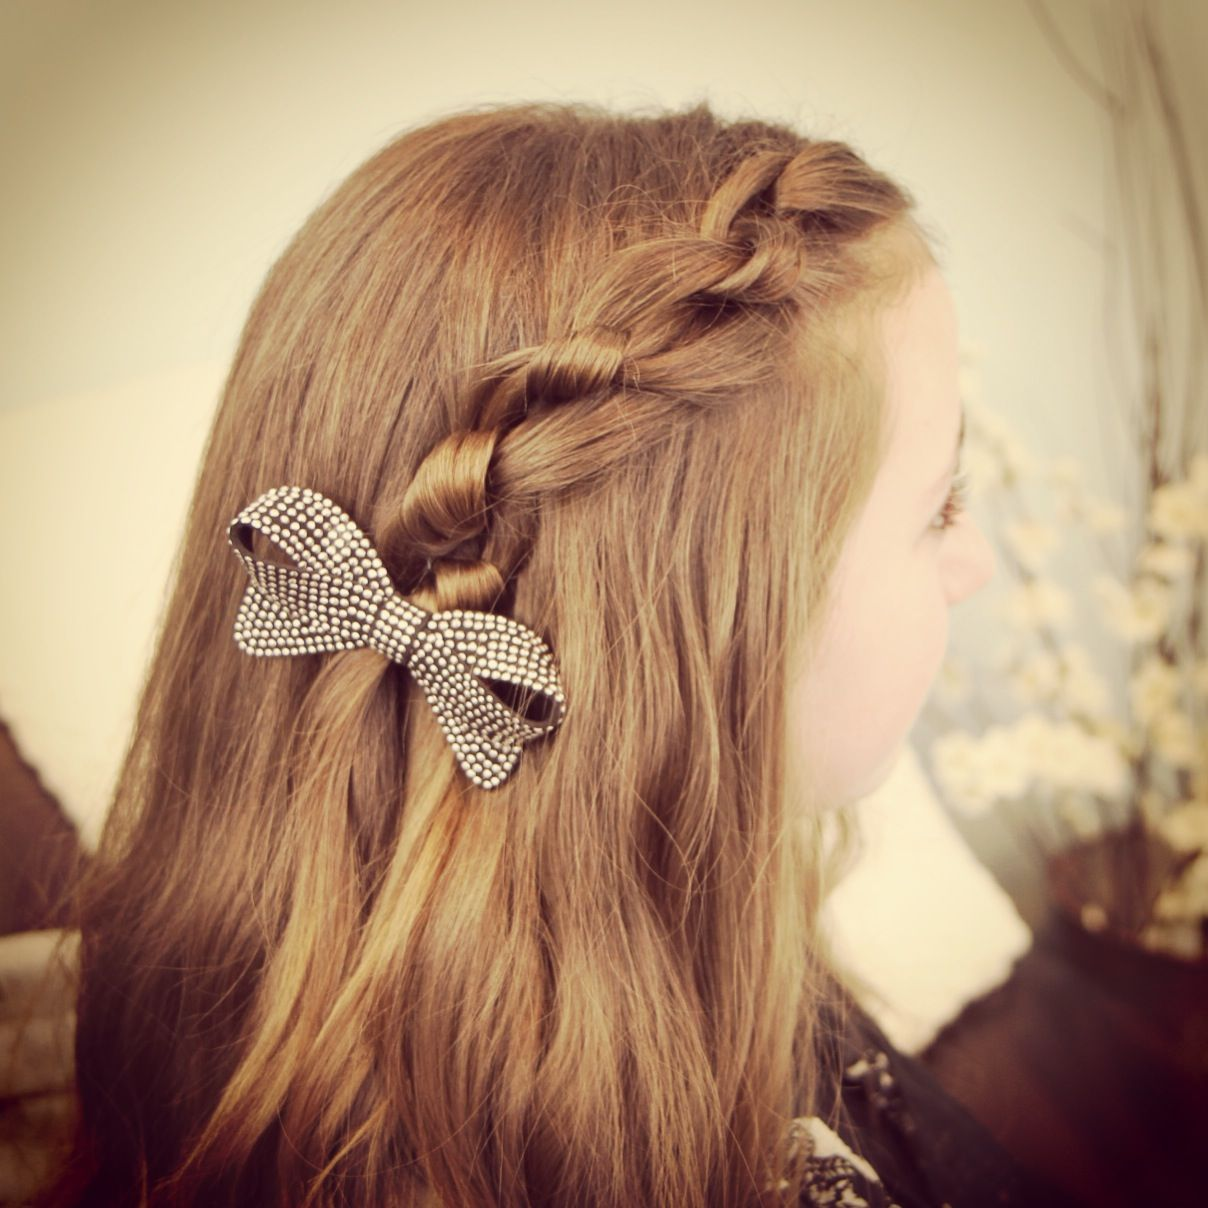 Kids hairstyles for short hair girls - Literally Just Tying Knots In Your Hair And It Looks Really Cute Kids Hairstylecute Girls Hairstylesschool Hairstyleseasy